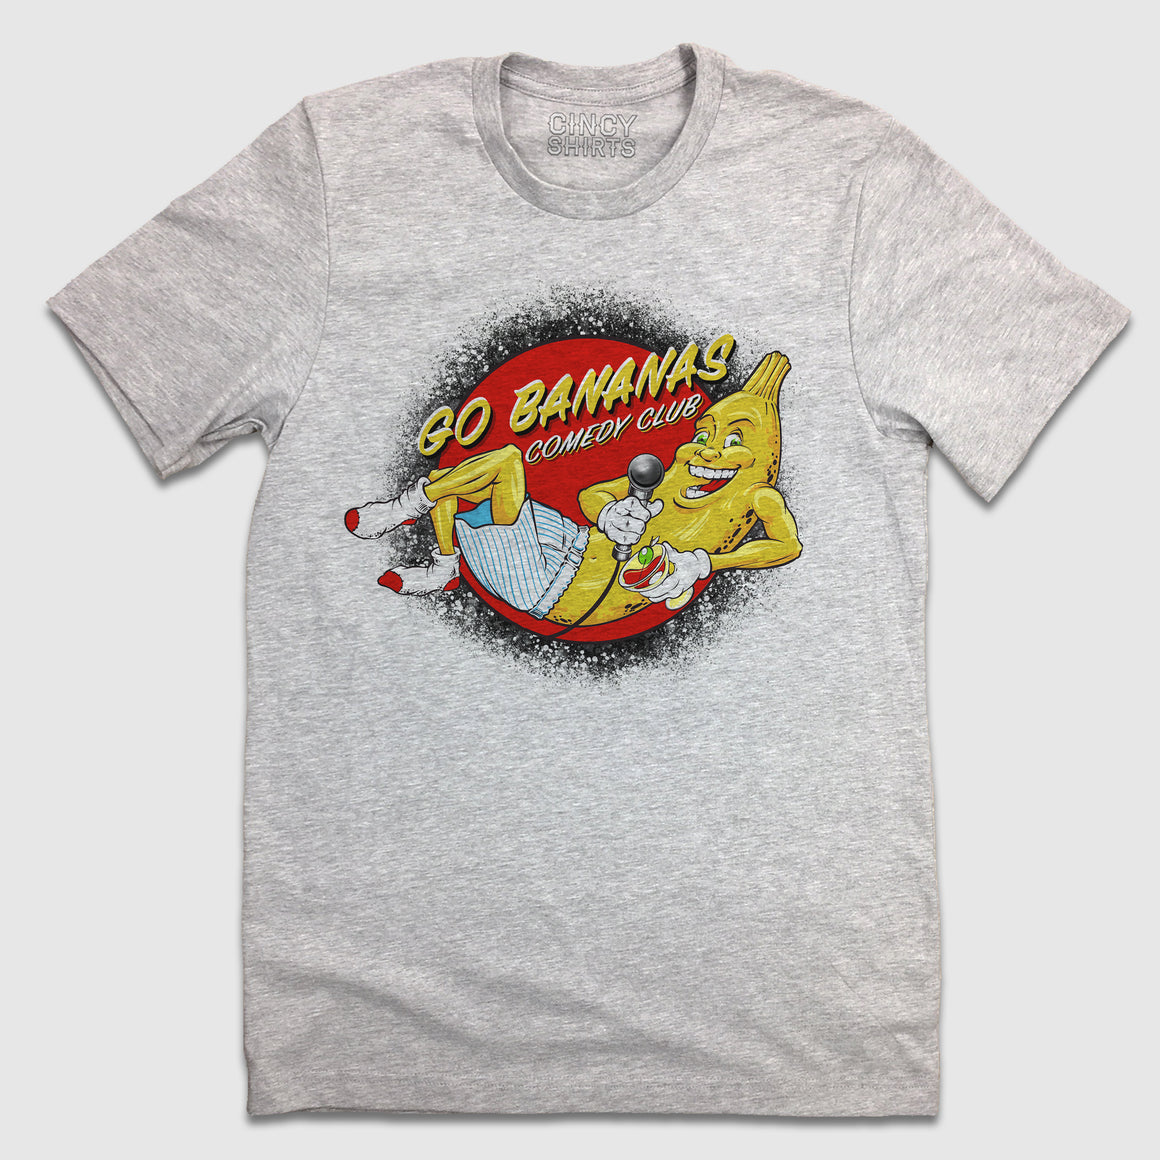 Go Bananas Comedy Club Logo - Cincy Shirts